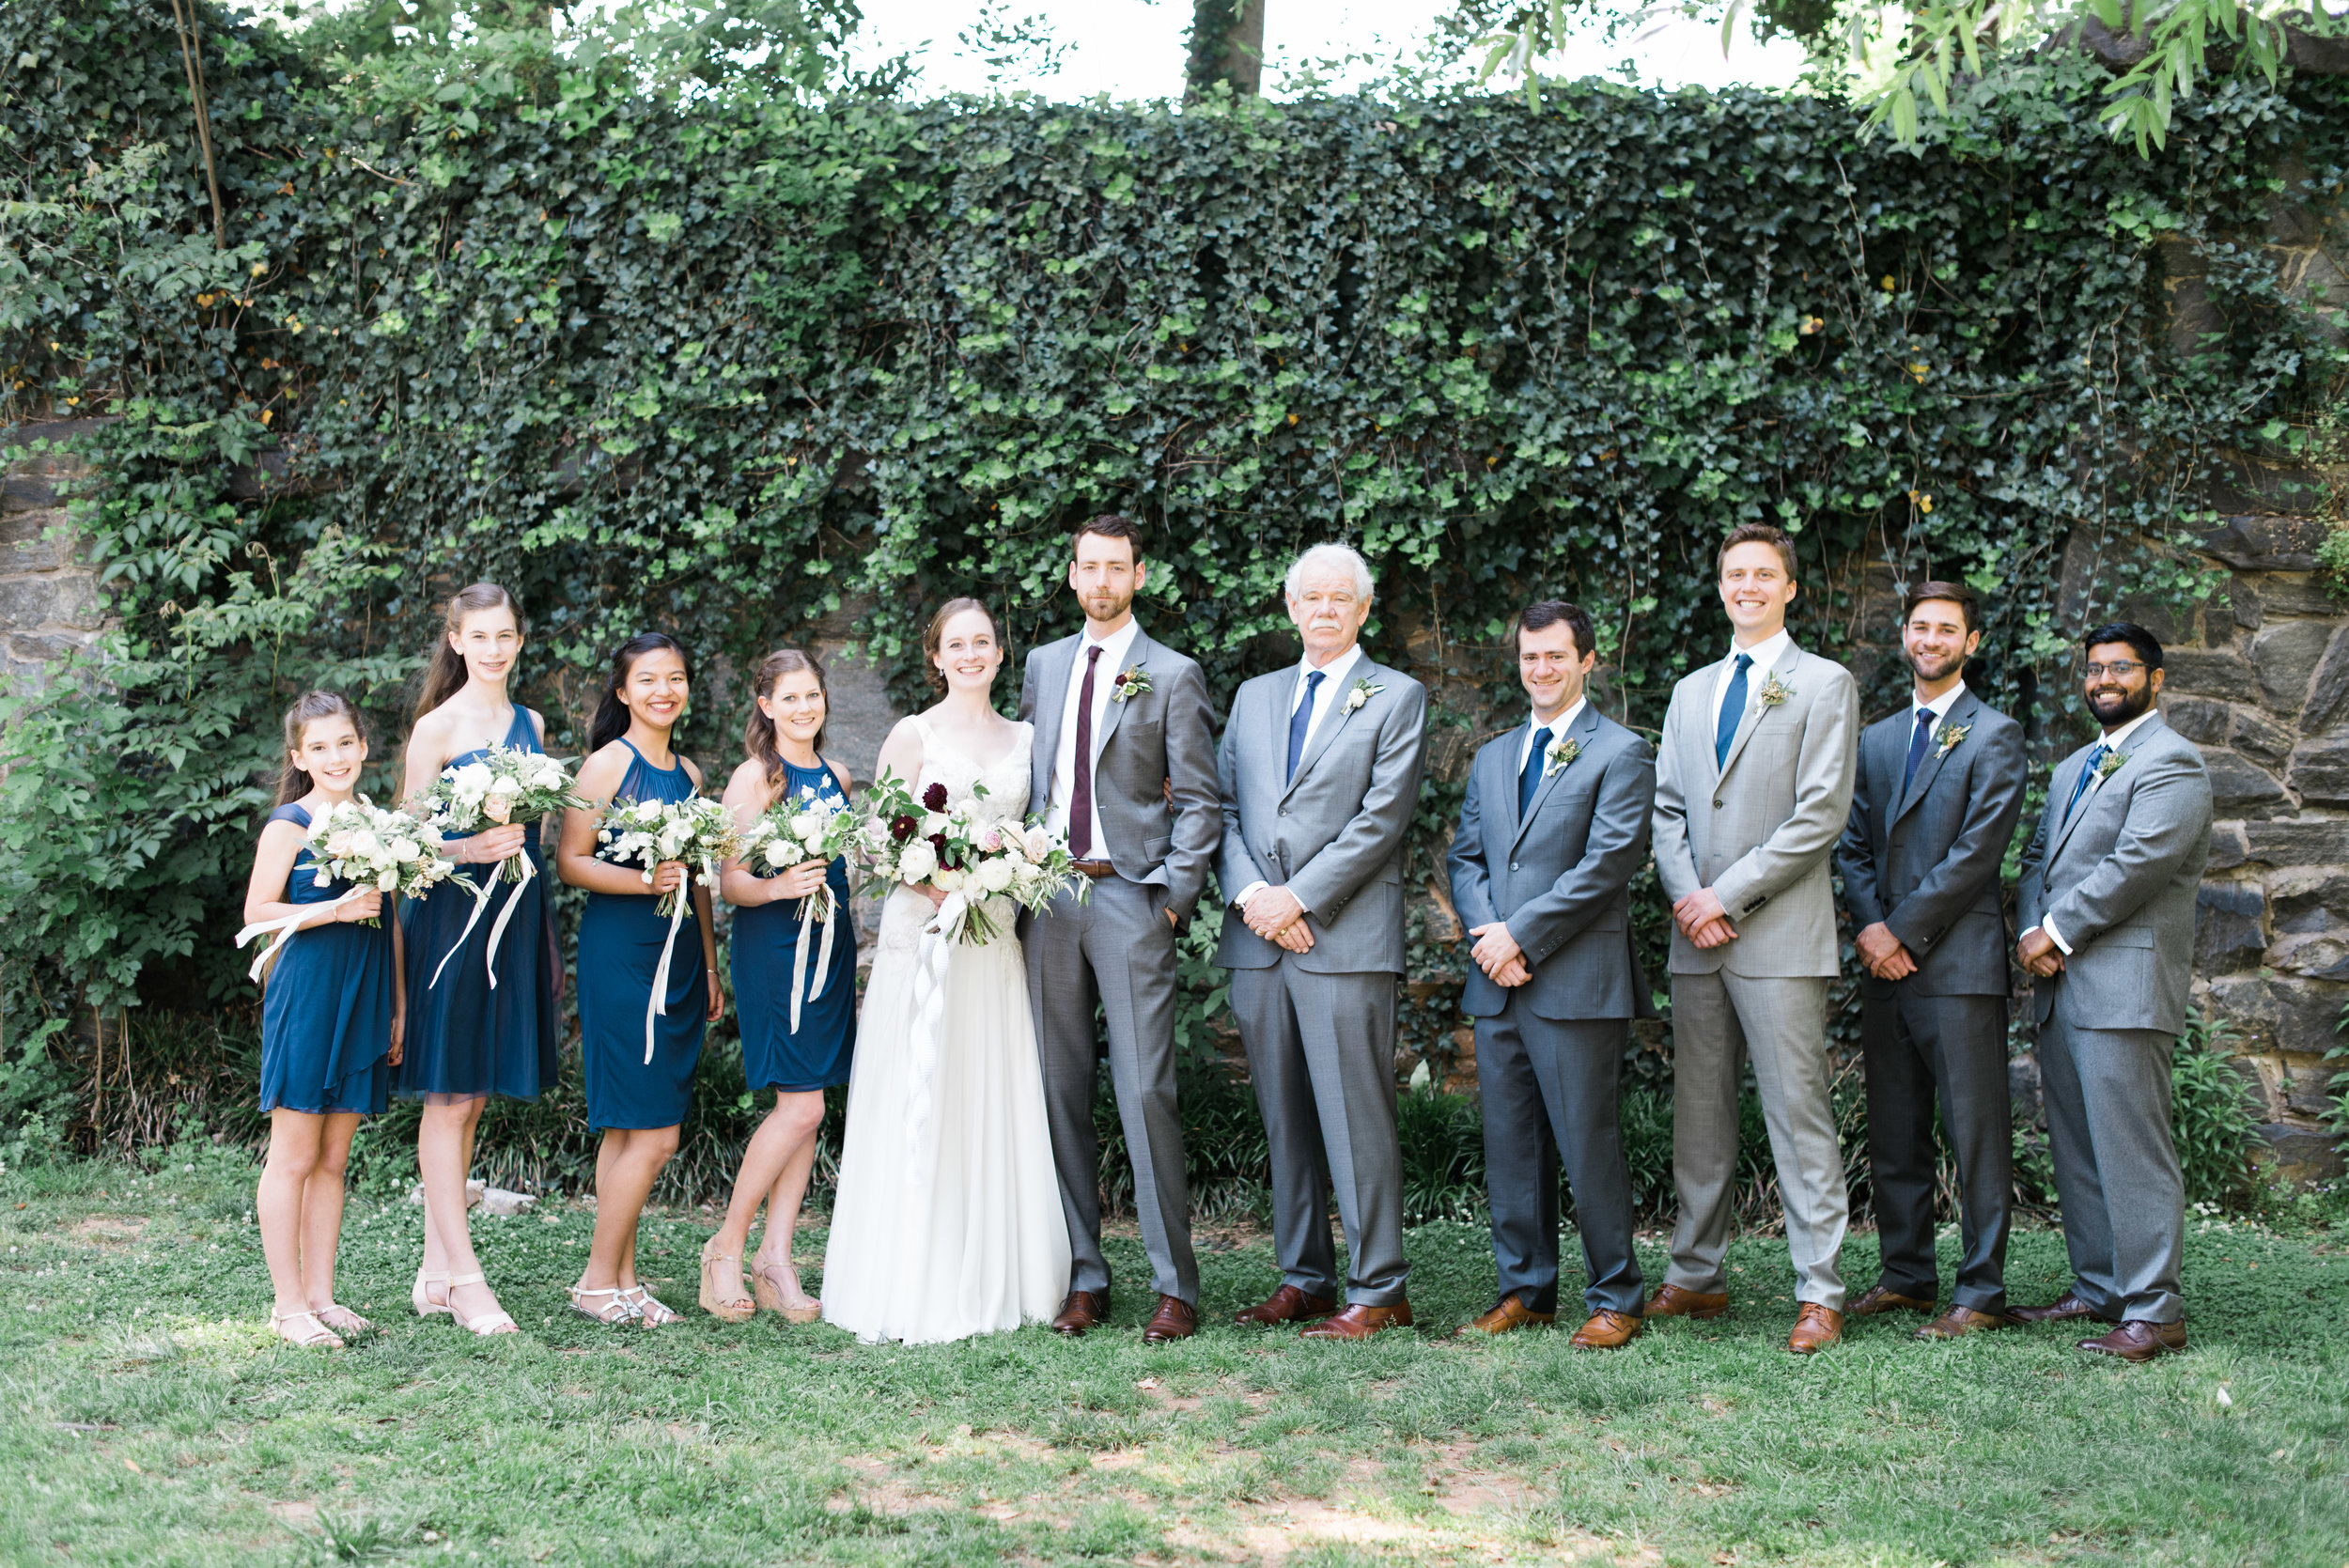 bridal party the greystone at piedmont park atlanta wedding photographer